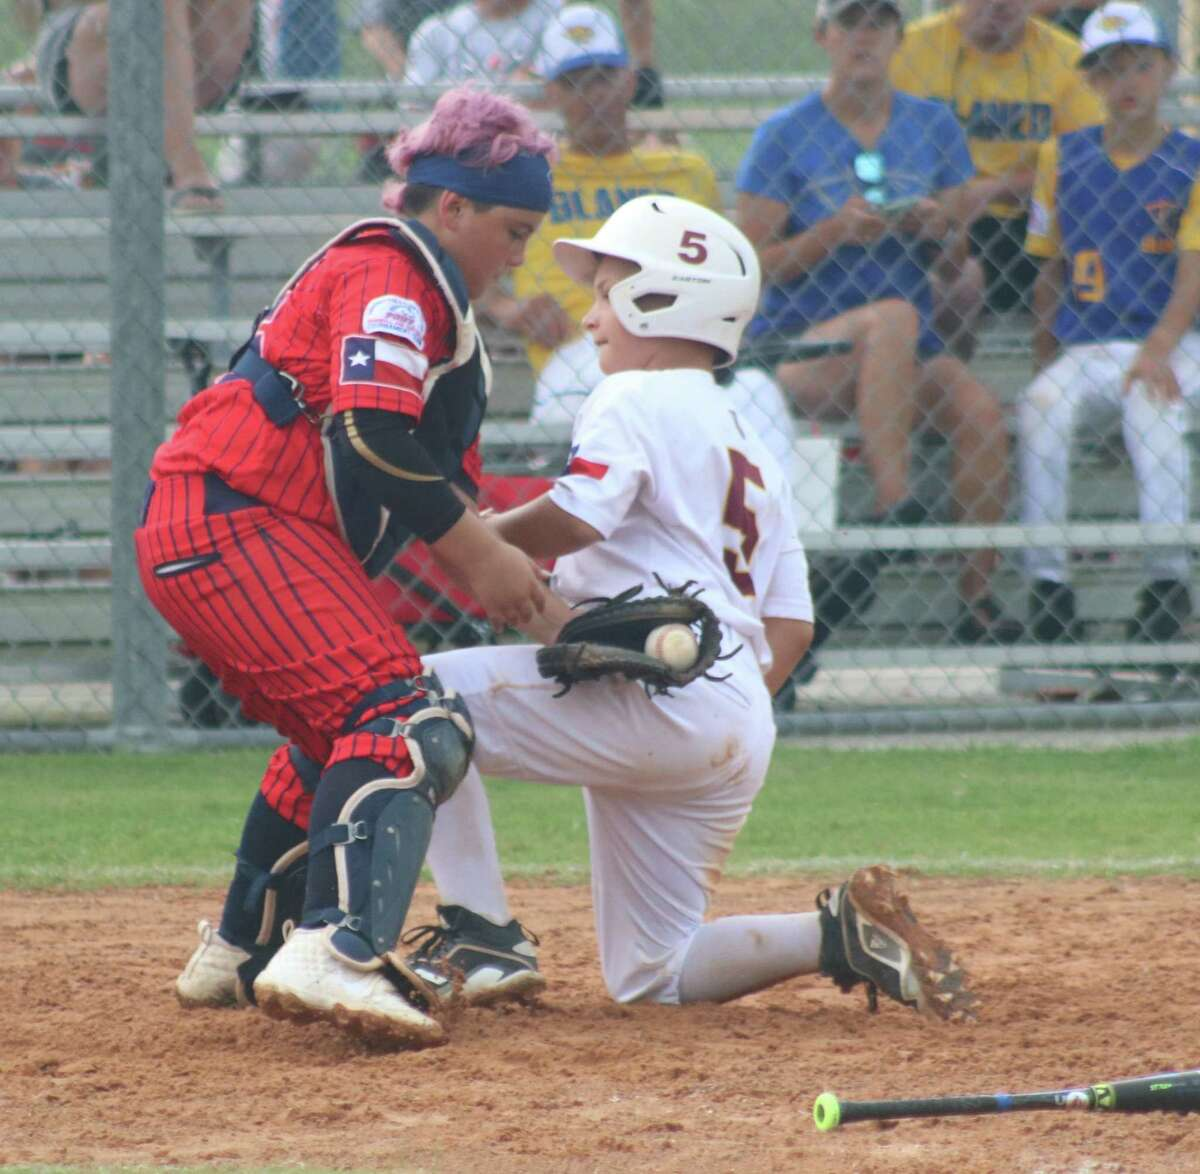 Deer Park's Aiden Gorom scores the team's third run against the Devin Braves during first-inning action Wednesday at the Ruth Minchen Athletic Complex.